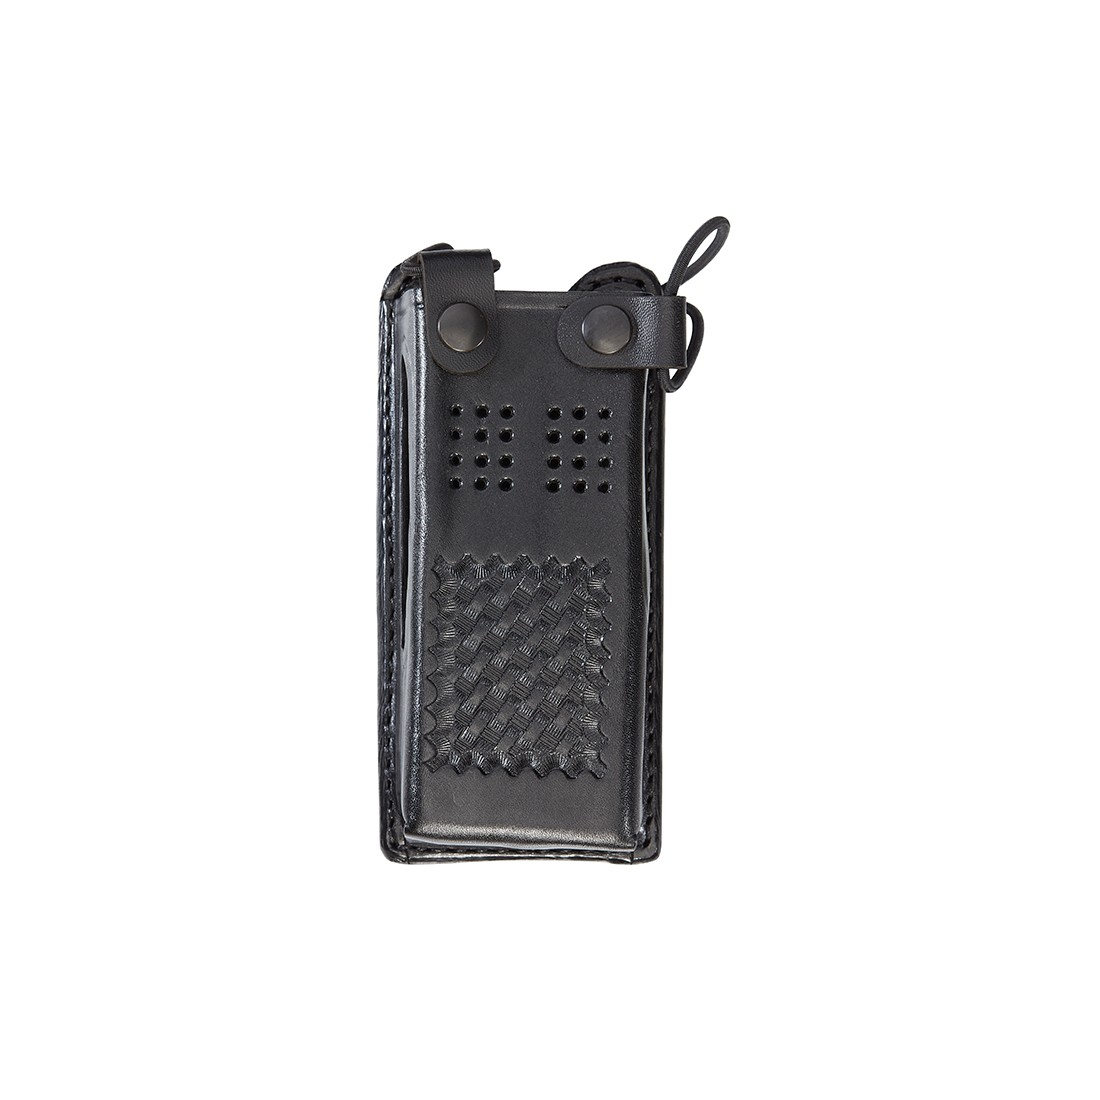 Swivel Radio Holder for Motorola APX6000 Model: 588-APX6000